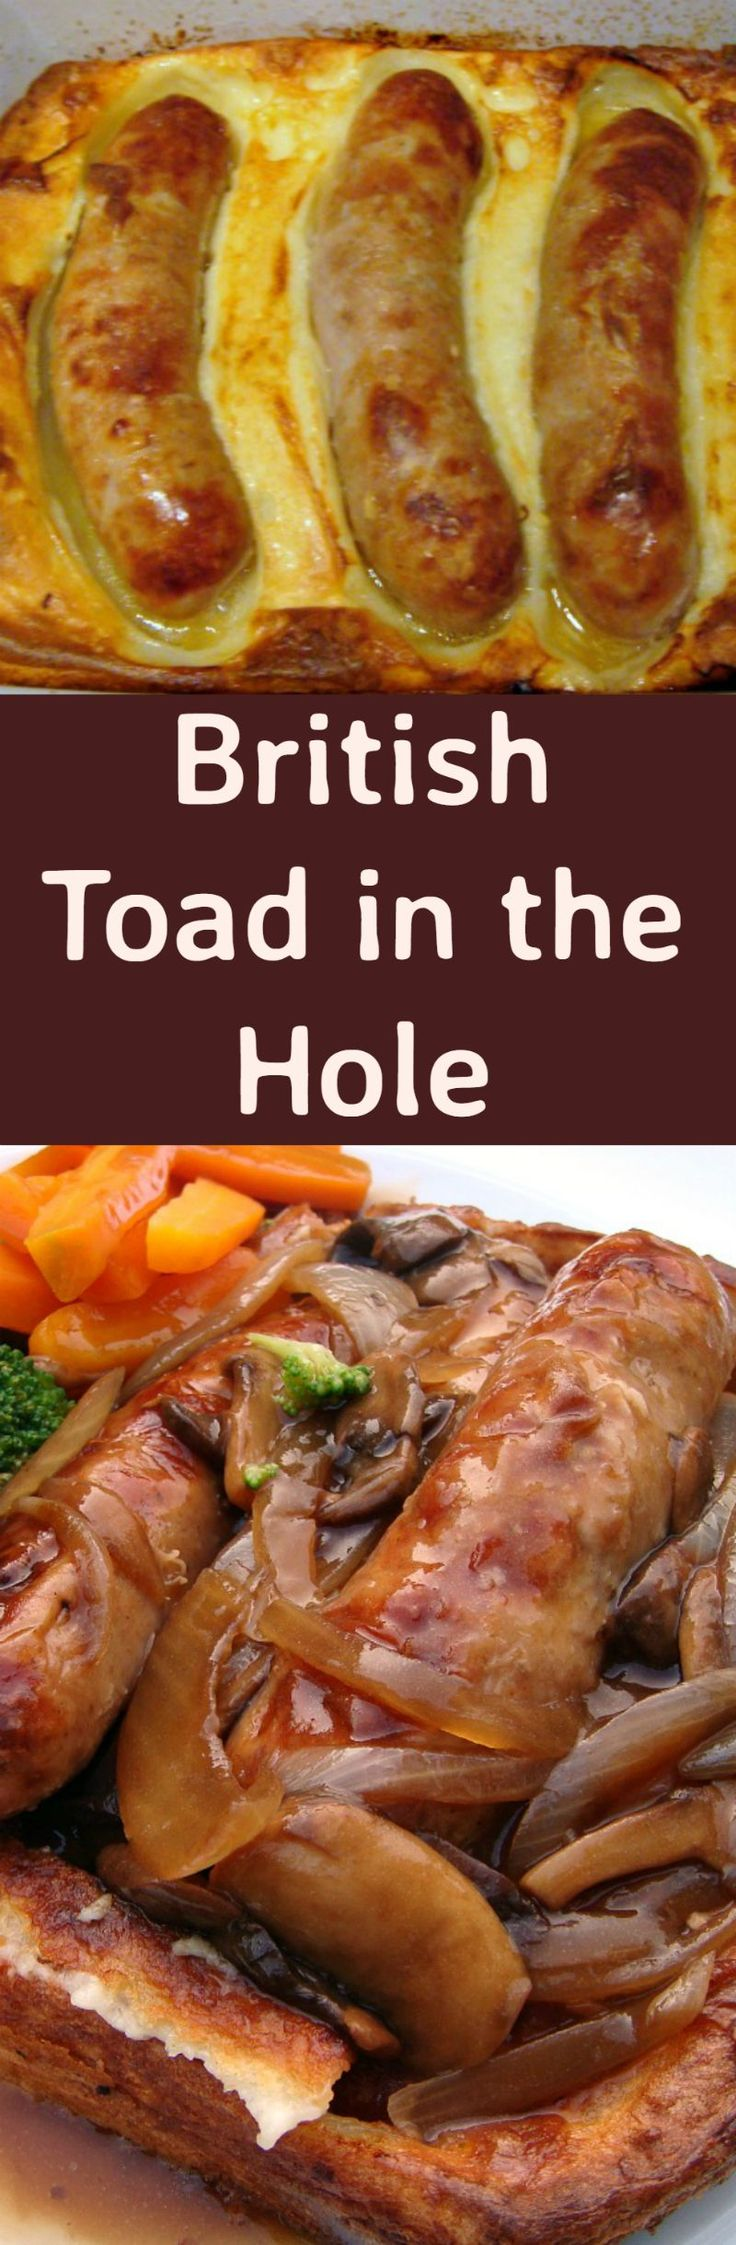 173 best all things english british scottish and irish images on british toad in the hole its a delicious easy dinner with sausages baked in forumfinder Choice Image